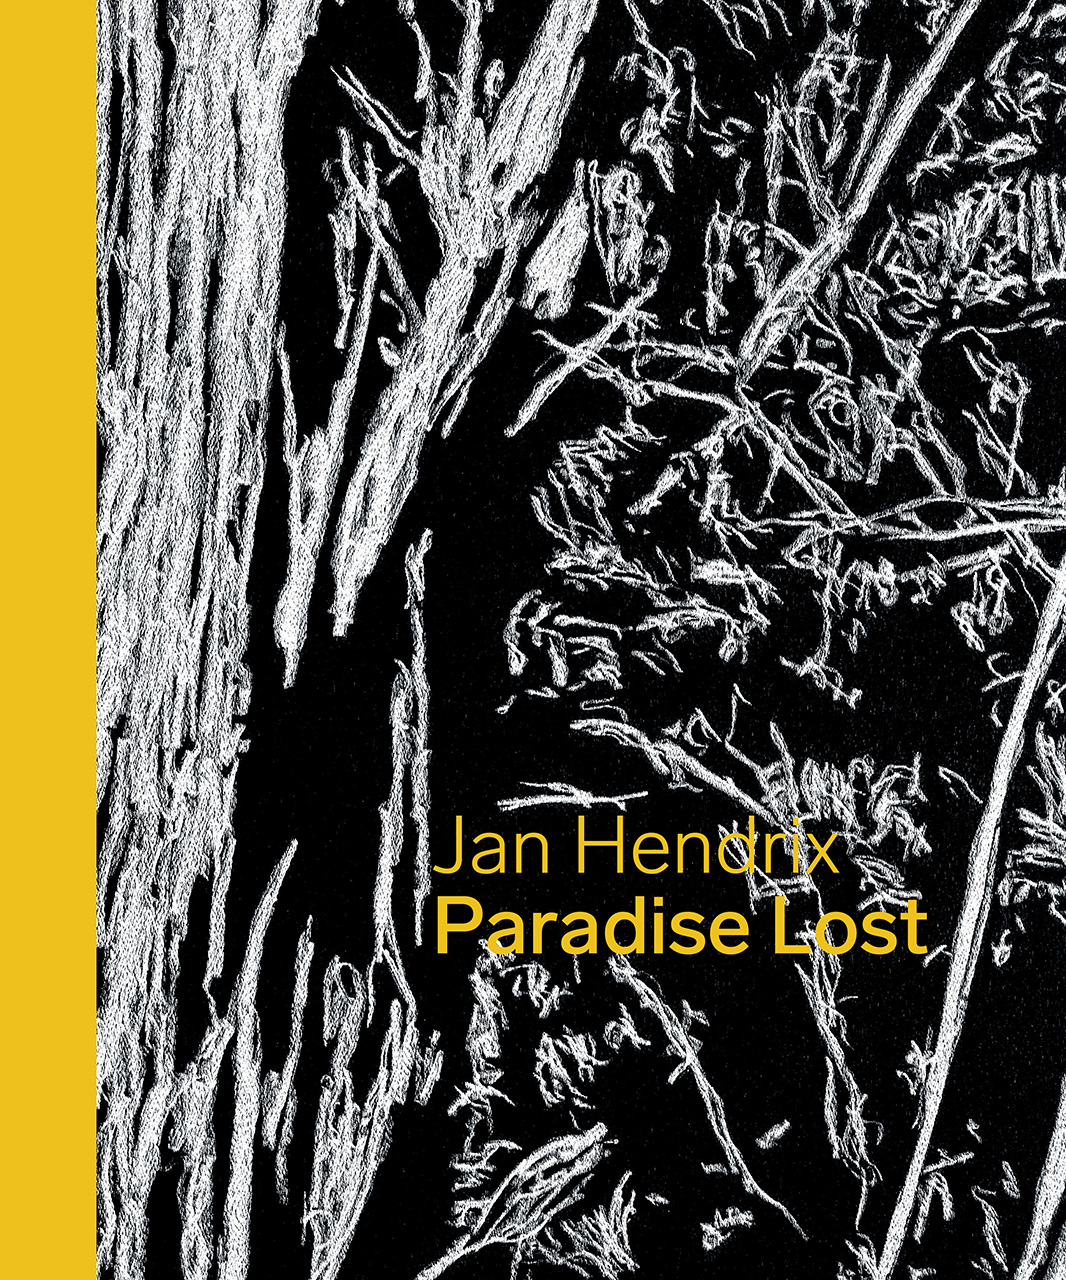 Jan Hendrix: Paradise Lost